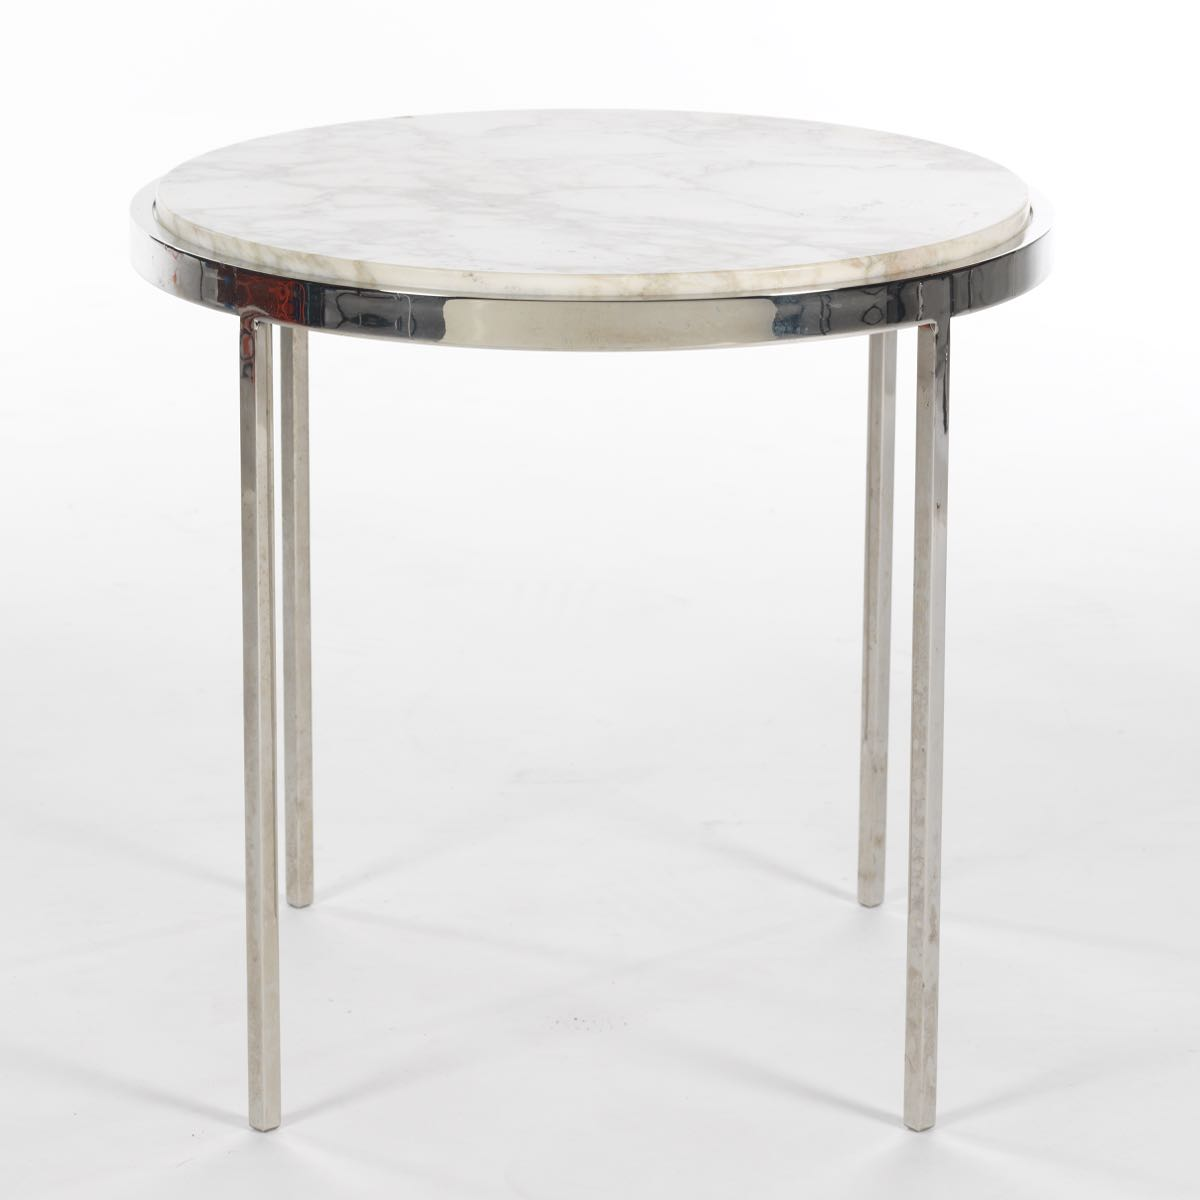 Chrome Base Accent Table With White Polished Marble Top, Brueton